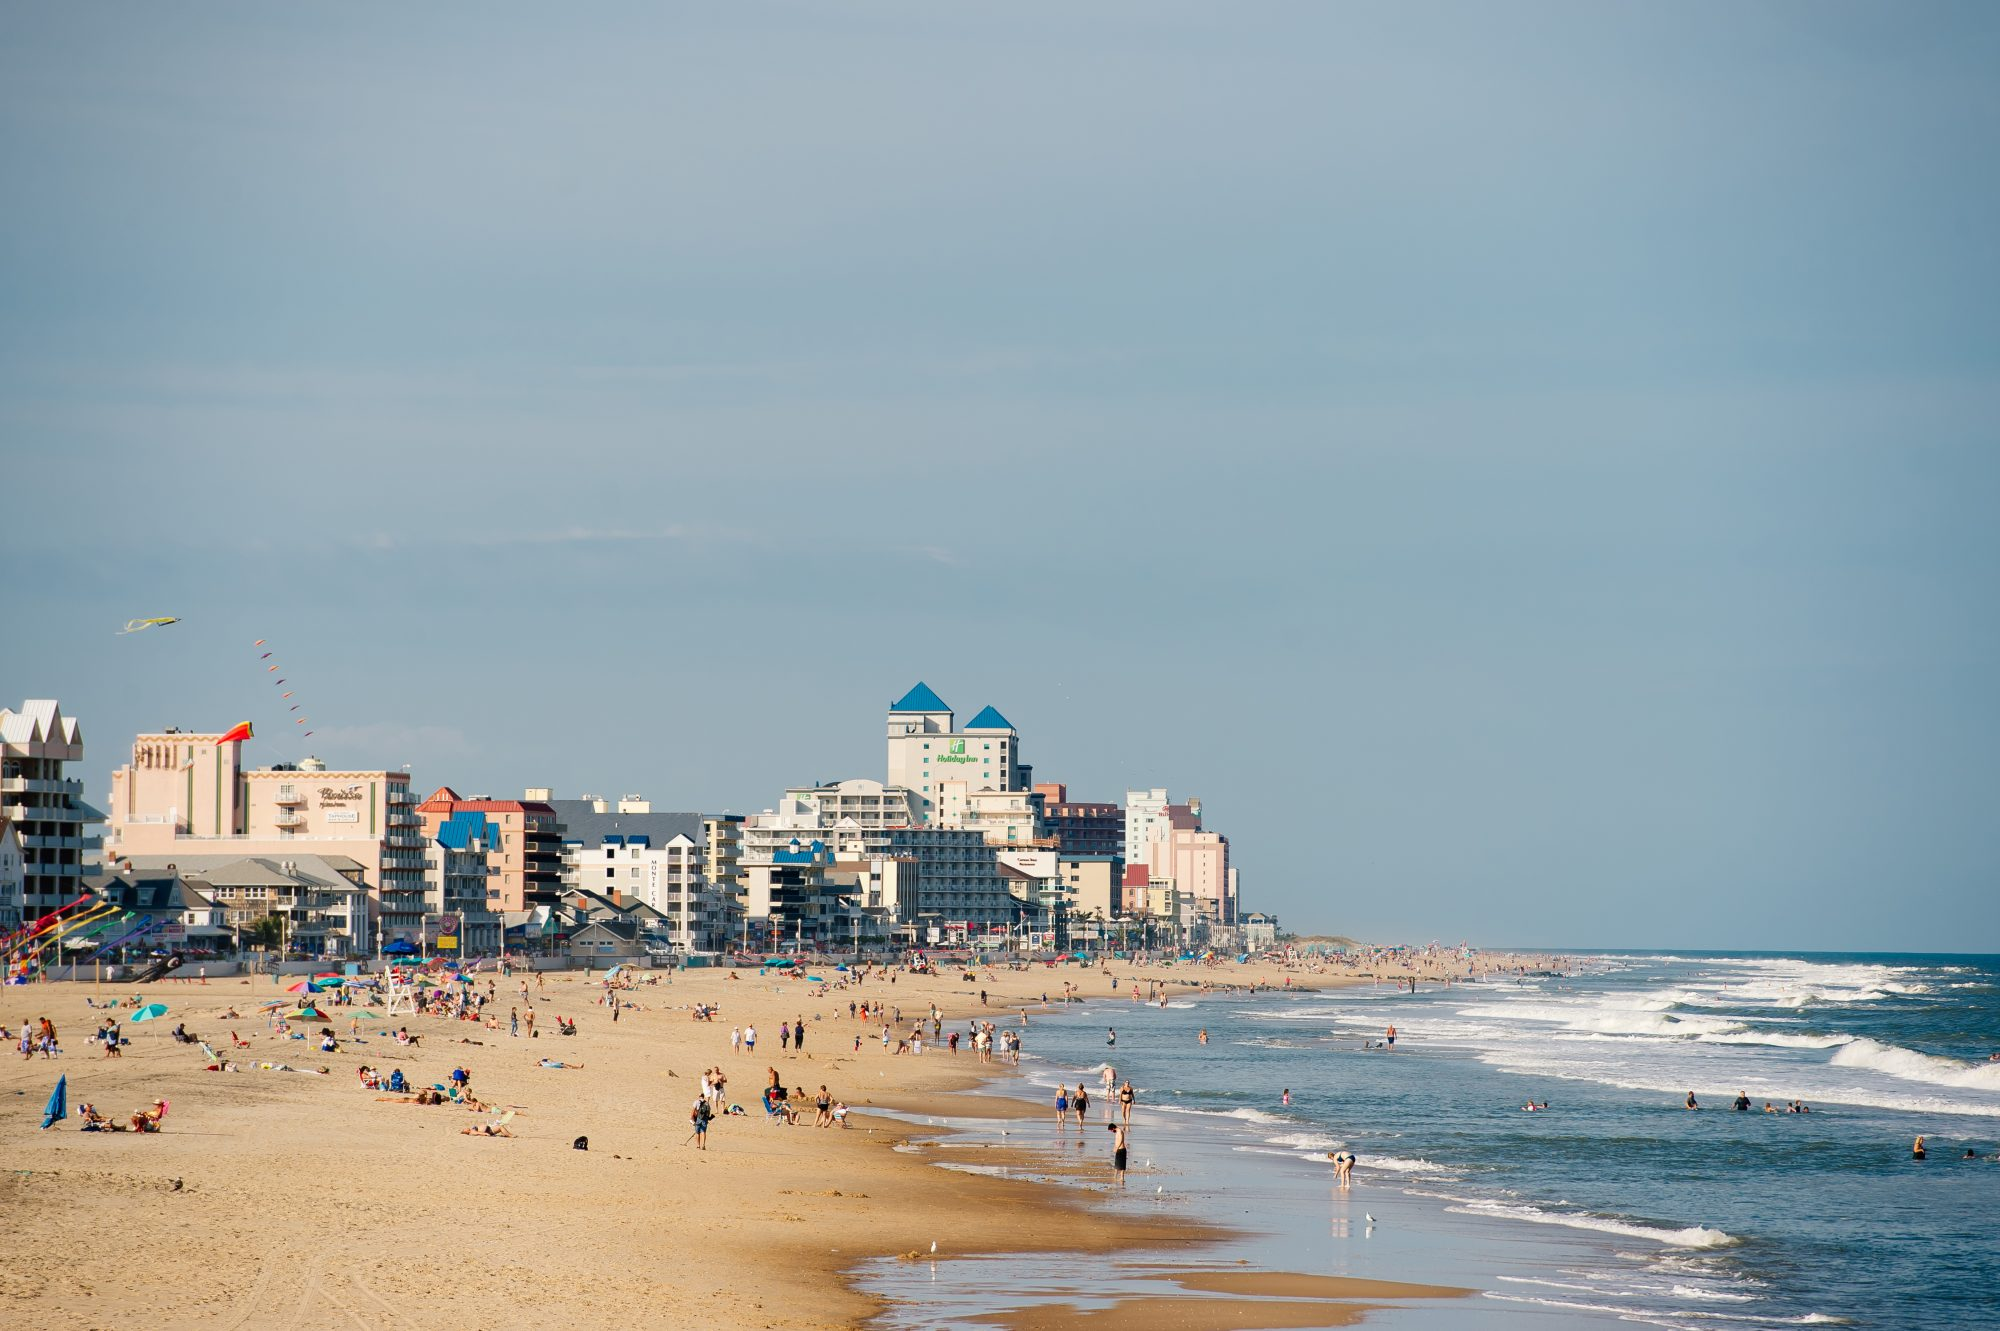 1. Ocean City, Maryland